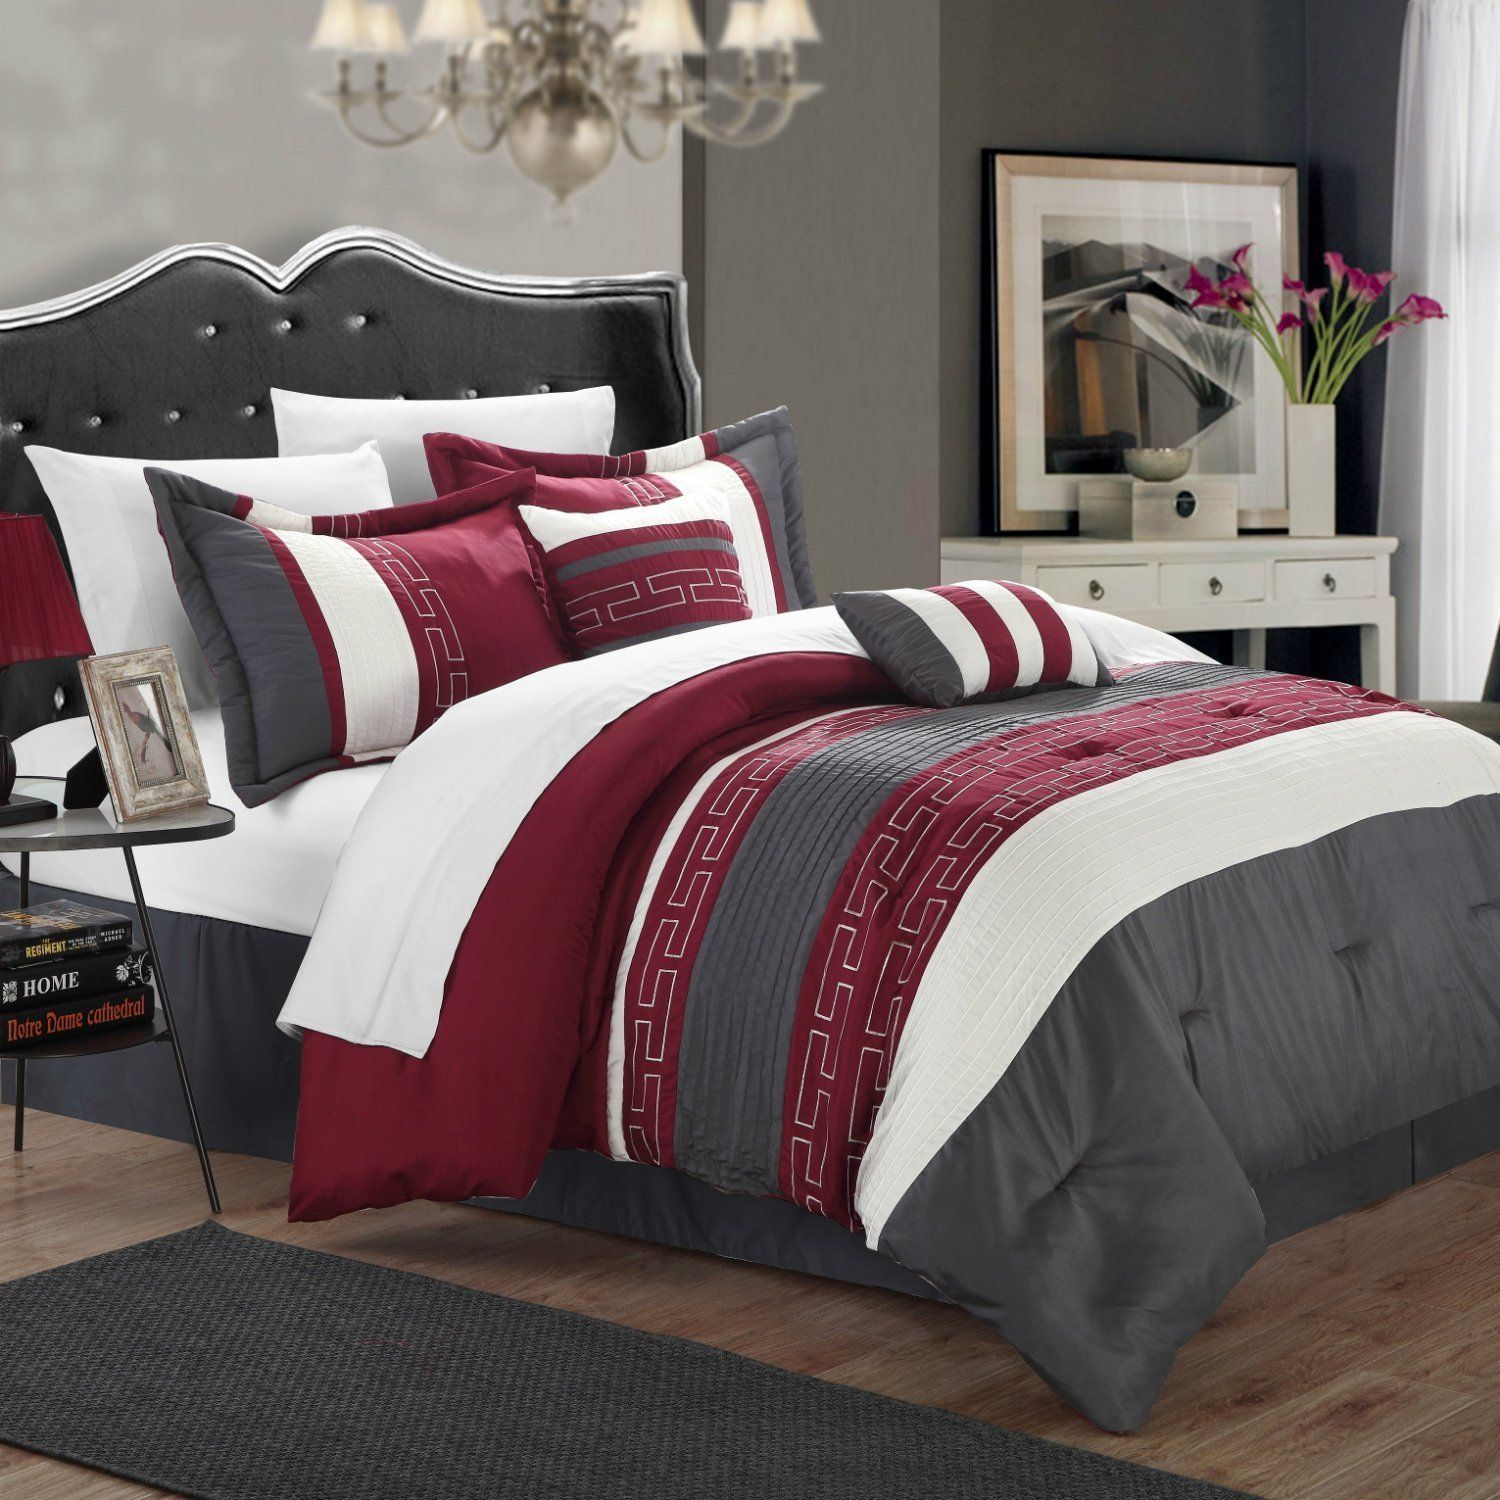 Queen Size Hotel Collection Comforter Set Burgundy / Gray Color Block  Geometric Patterns 6 Pieces